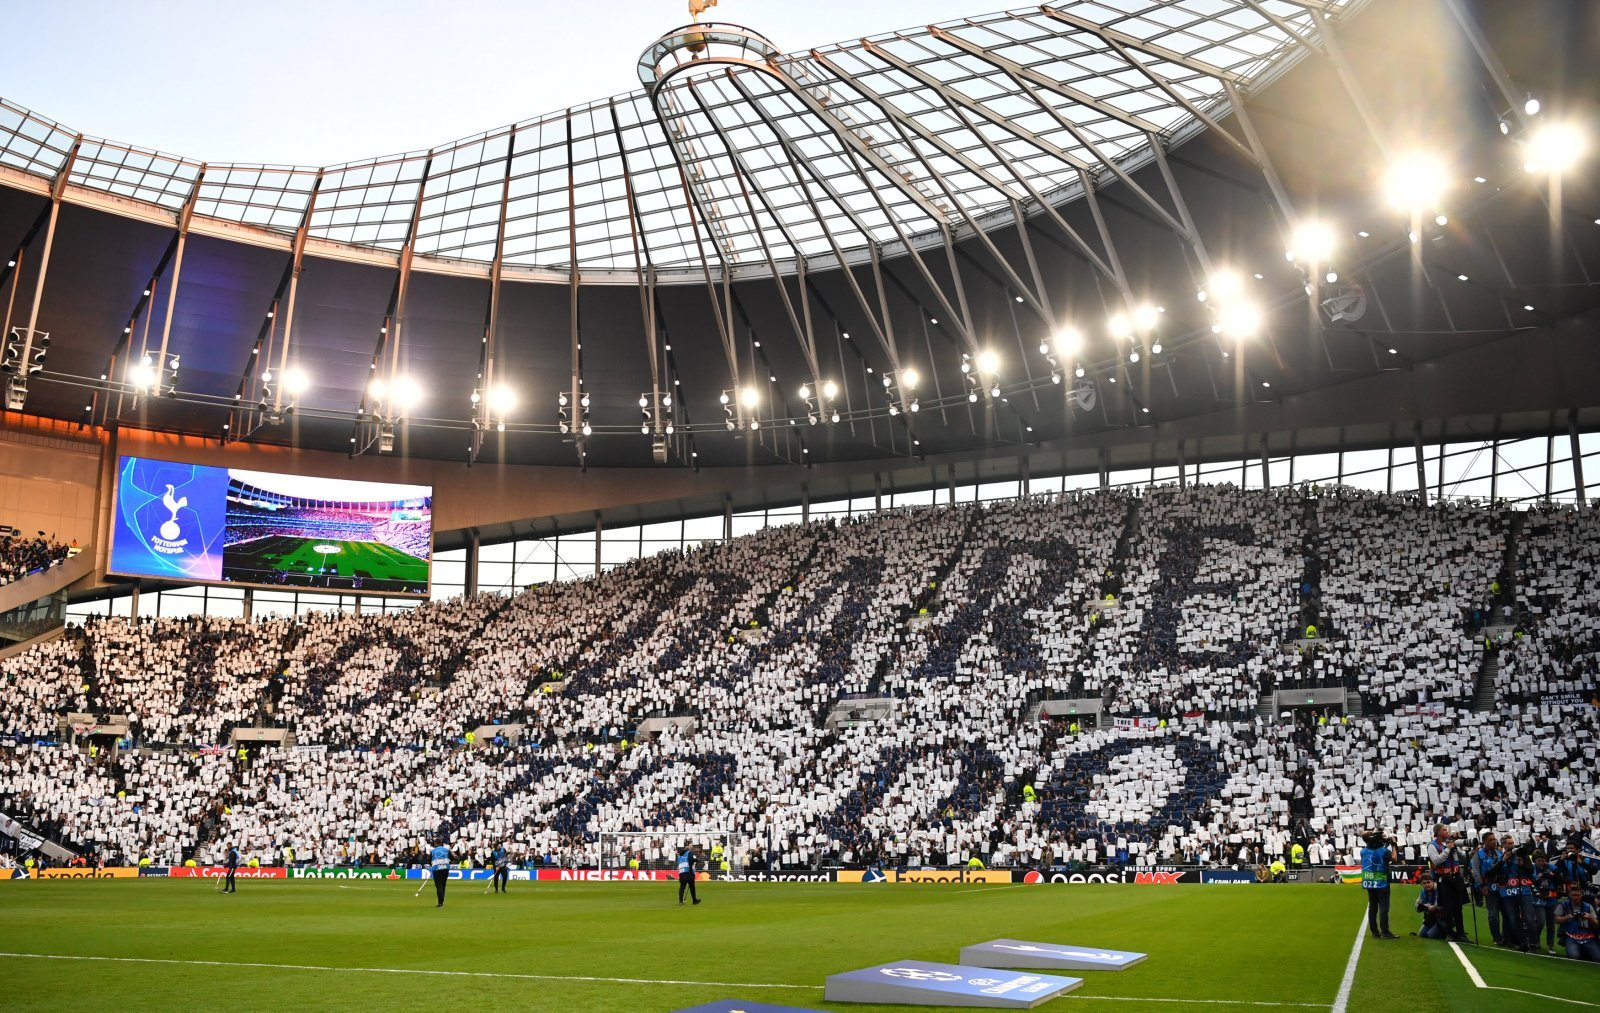 General View inside Tottenham Hotspur Stadium, Champions League Semi-Final v Ajax, April 2019